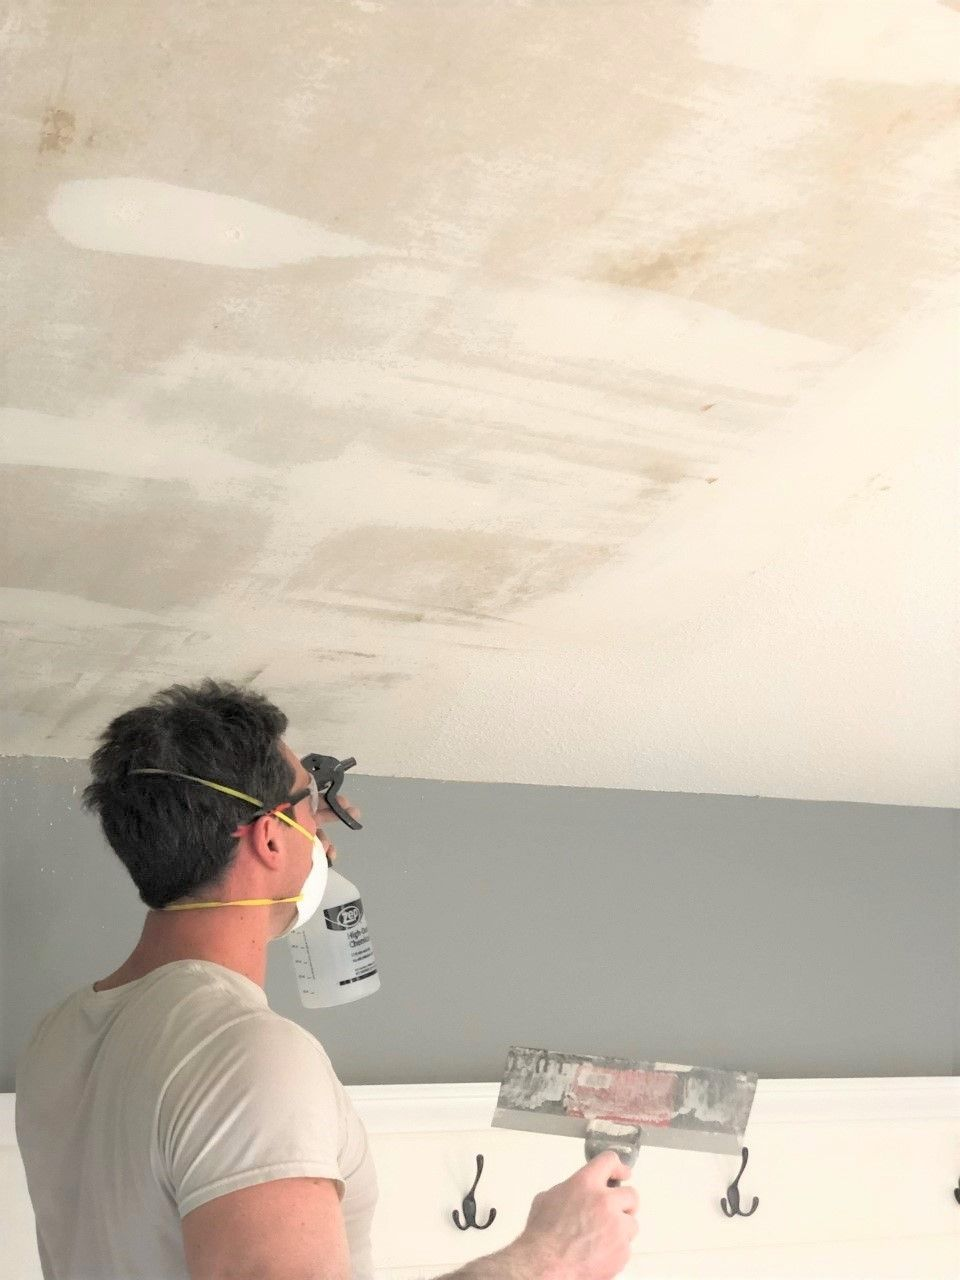 How To Remove Popcorn Ceilings Like A Pro Smoothing Textured Ceilings Removing Popcorn Ceiling Popcorn Ceiling Ceiling Texture